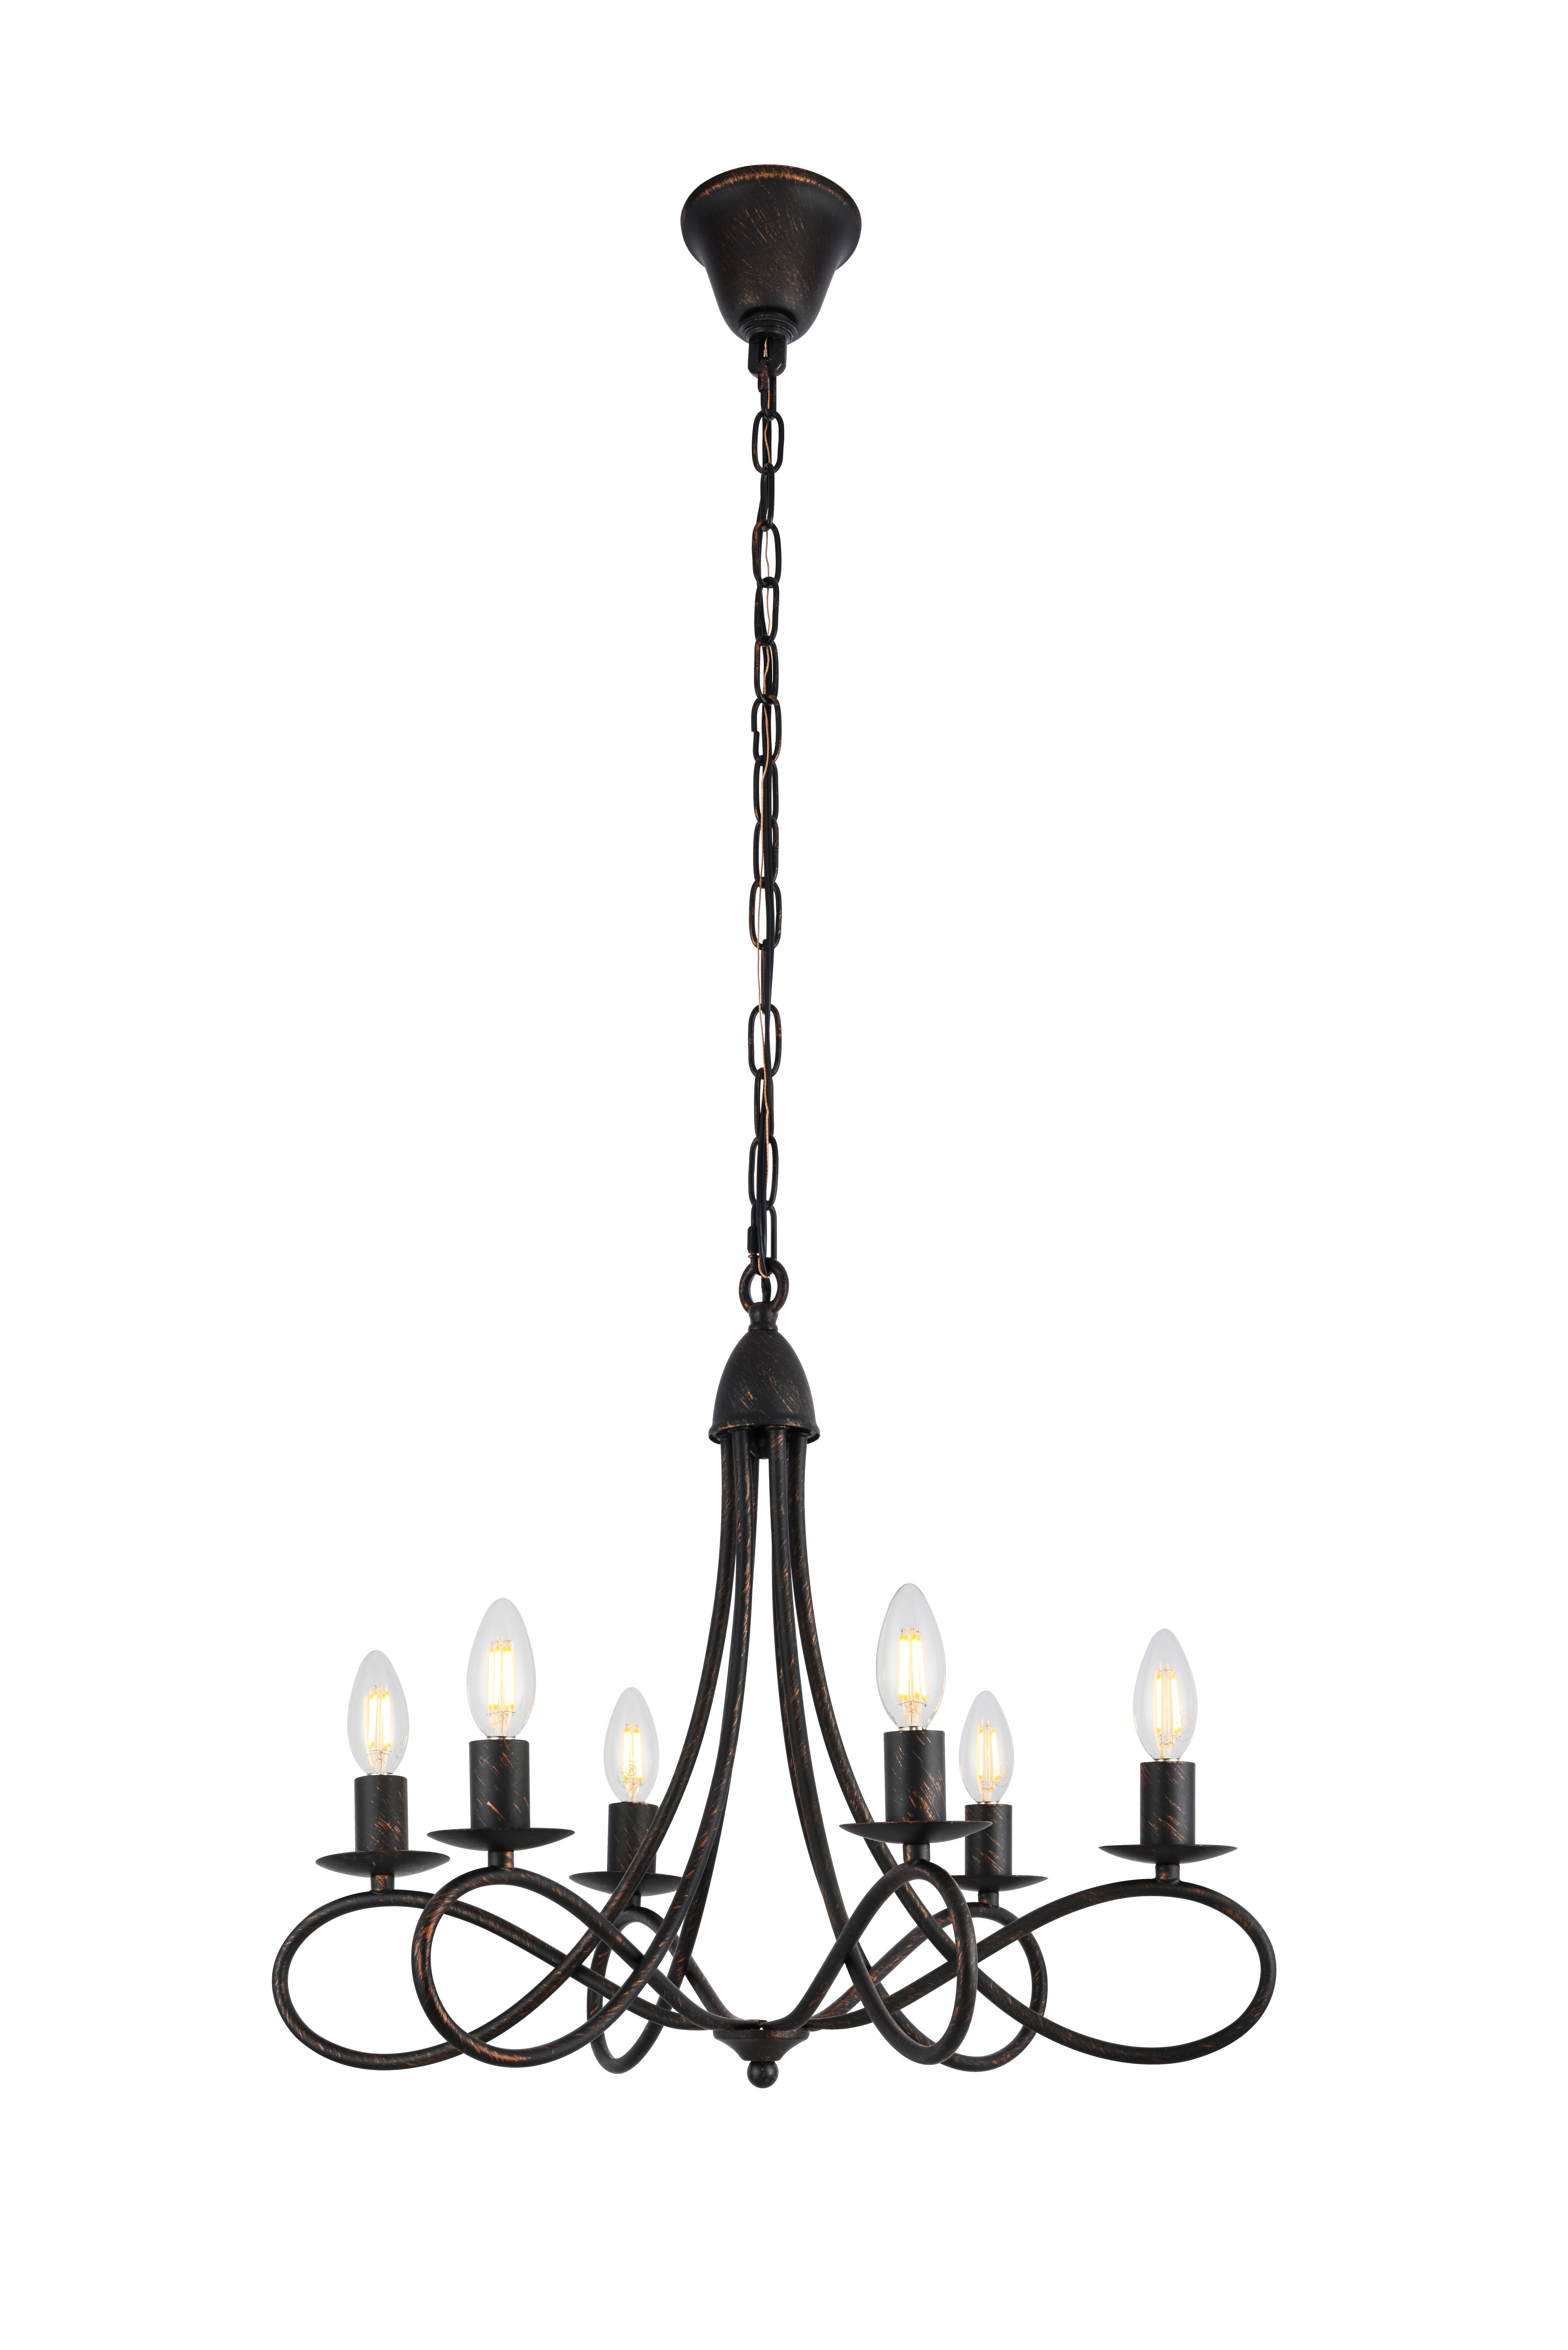 Well Known Perseus 6 Light Candle Style Chandeliers With Regard To Darby Home Co Diaz 6 Light Candle Style Chandelier & Reviews (View 10 of 20)